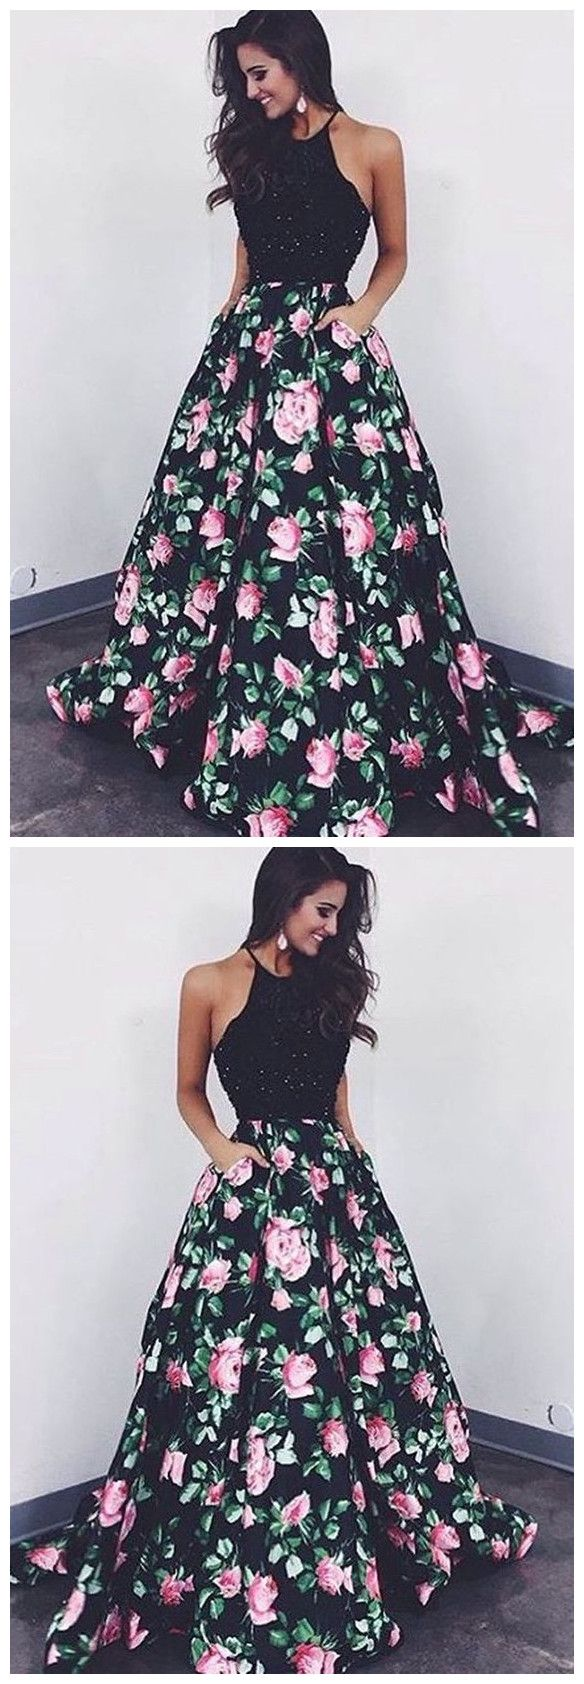 Ball gown prom dress fashion flower print party dress p